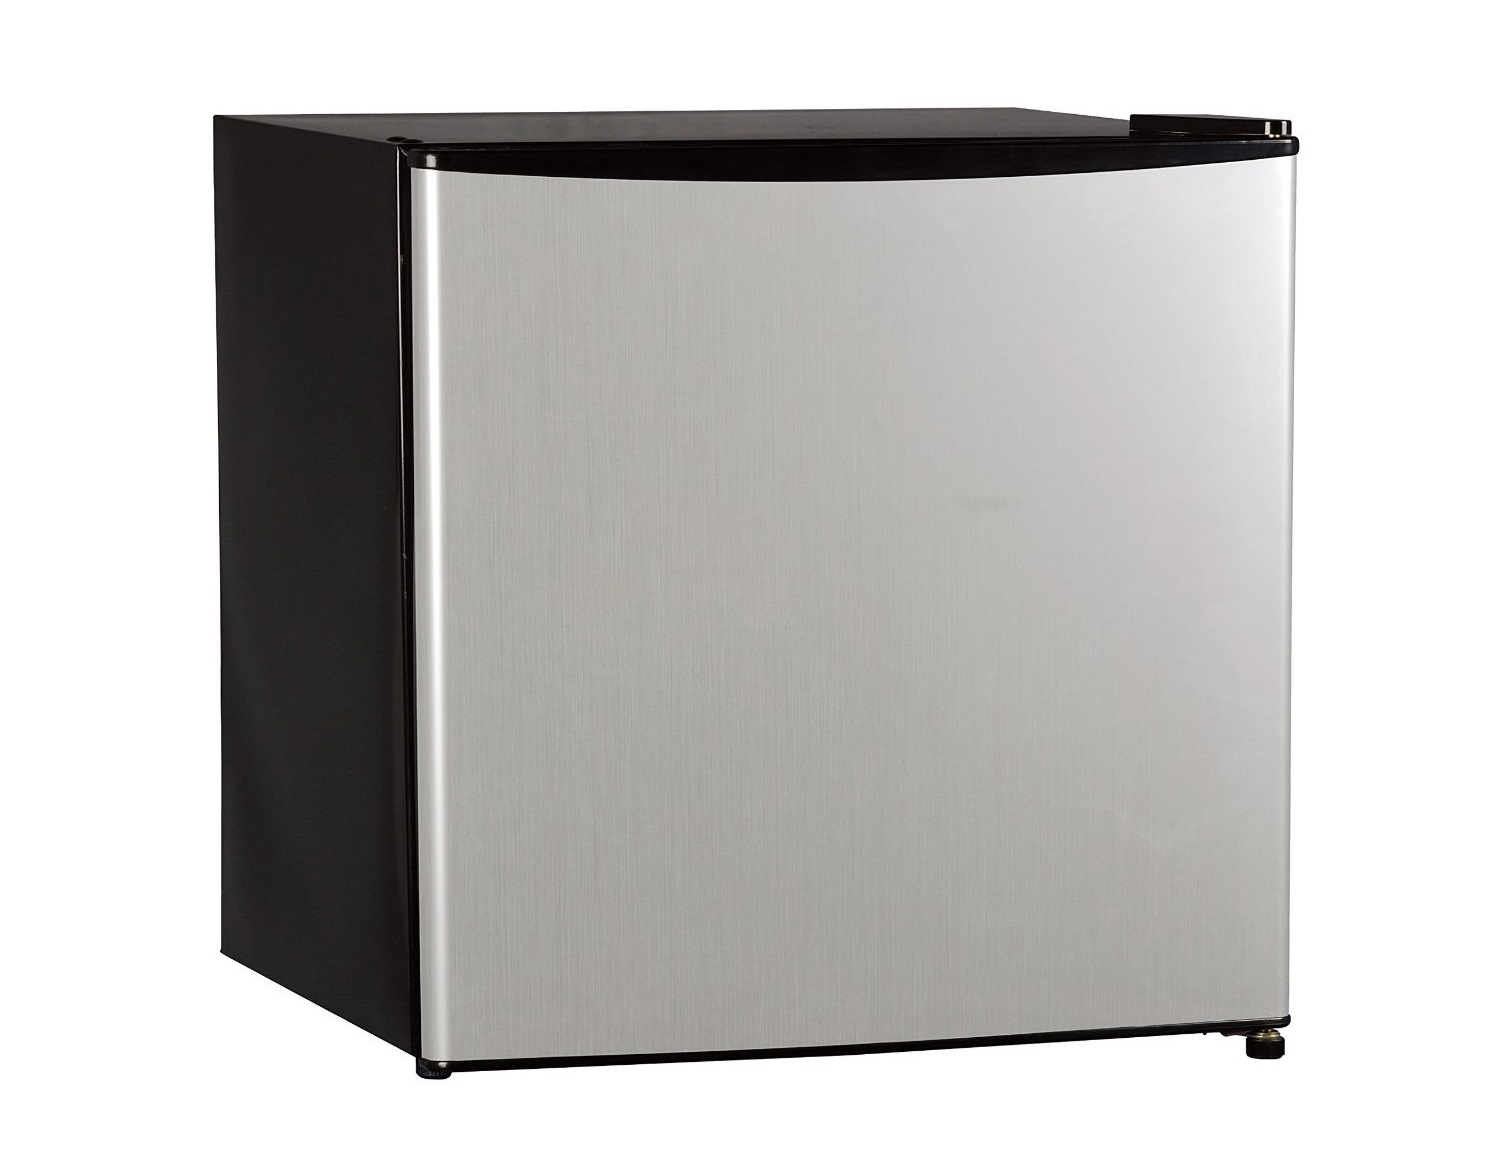 Midea WHS-65LSS1 Mini Fridge - Design and materials used